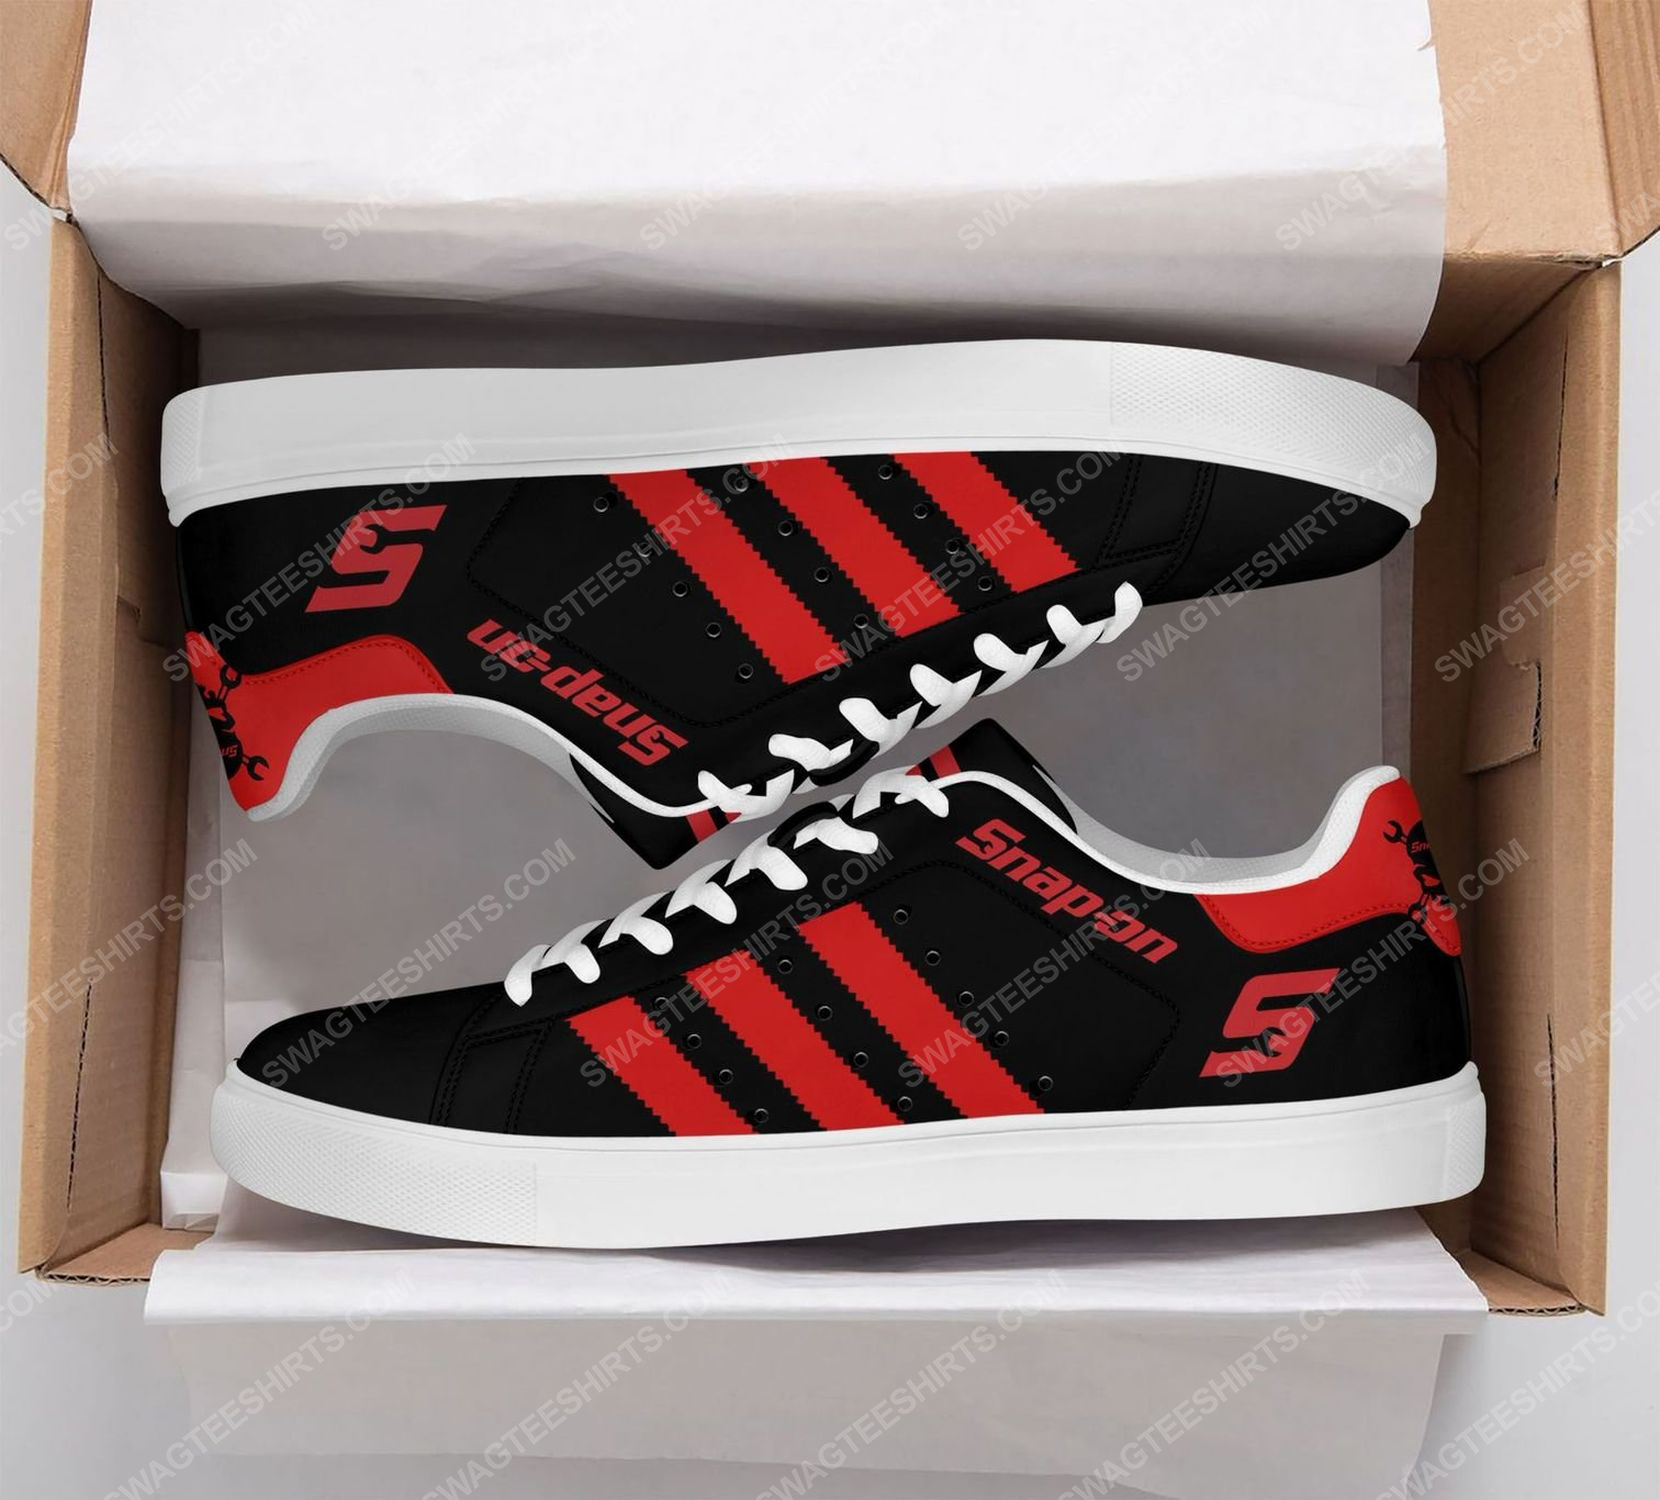 The snap-on version black stan smith shoes